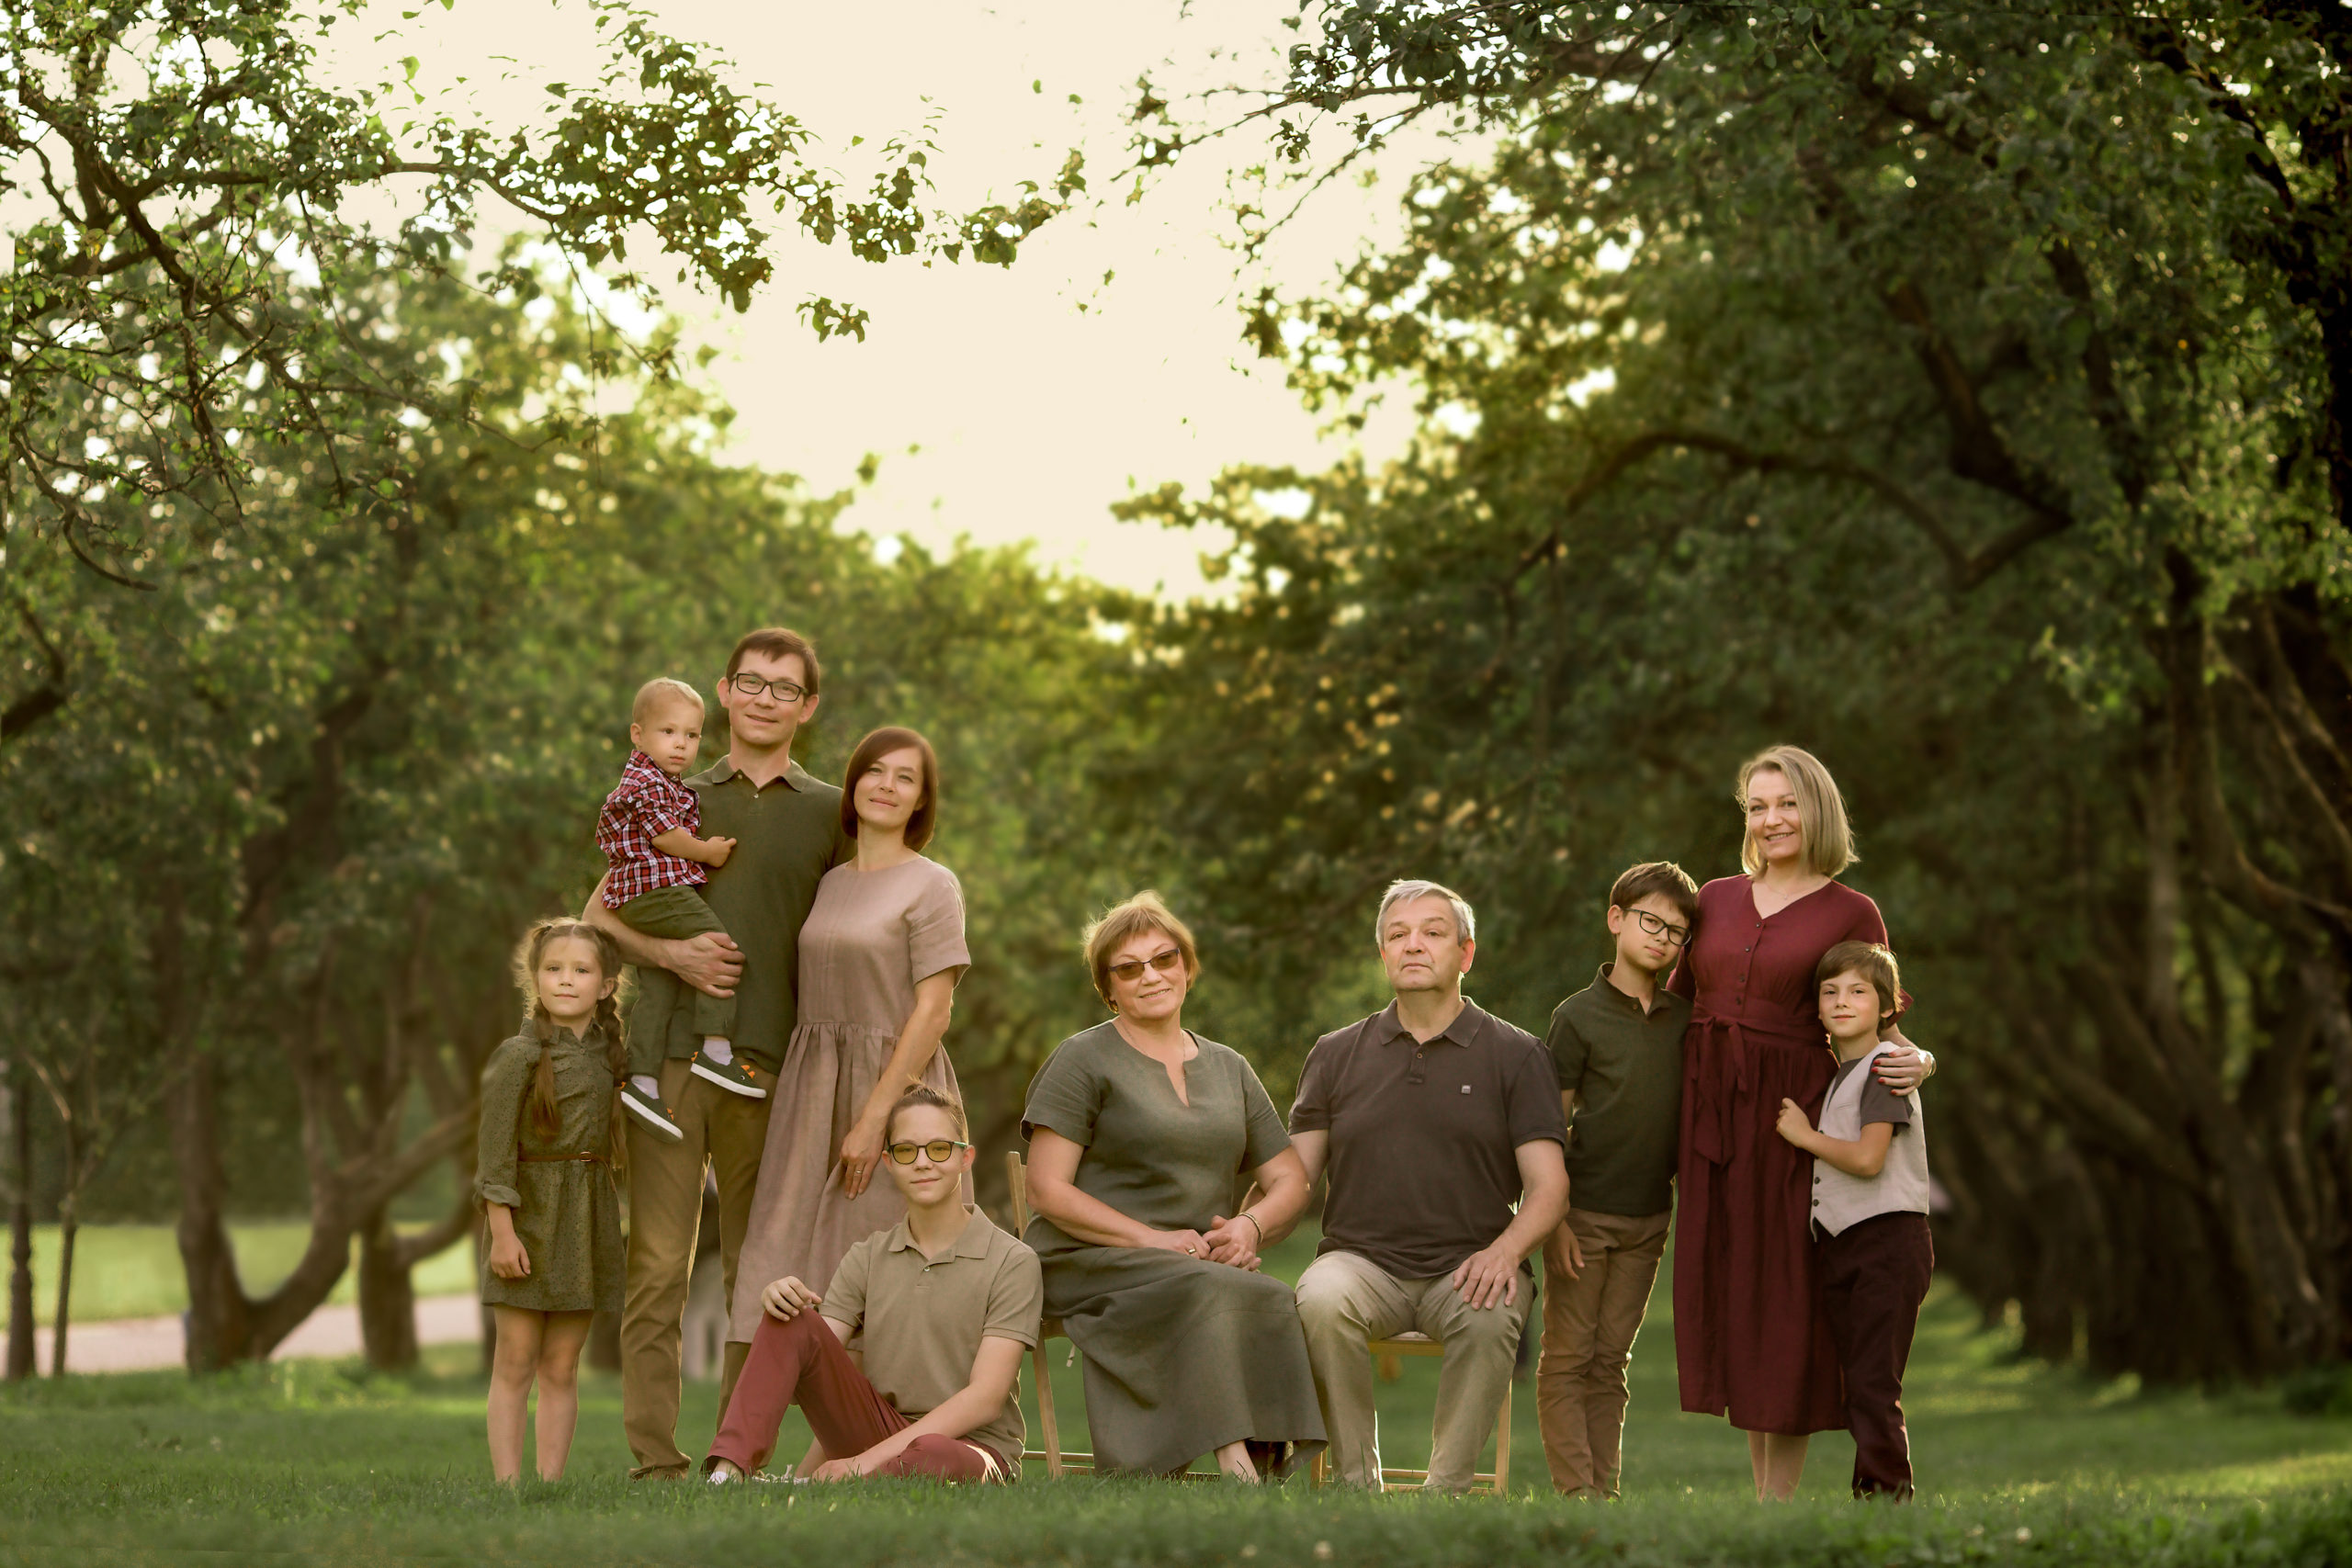 Outdoor family photography family photo session in a park matching family look green wine red and beige colours Wimbledon family photographer